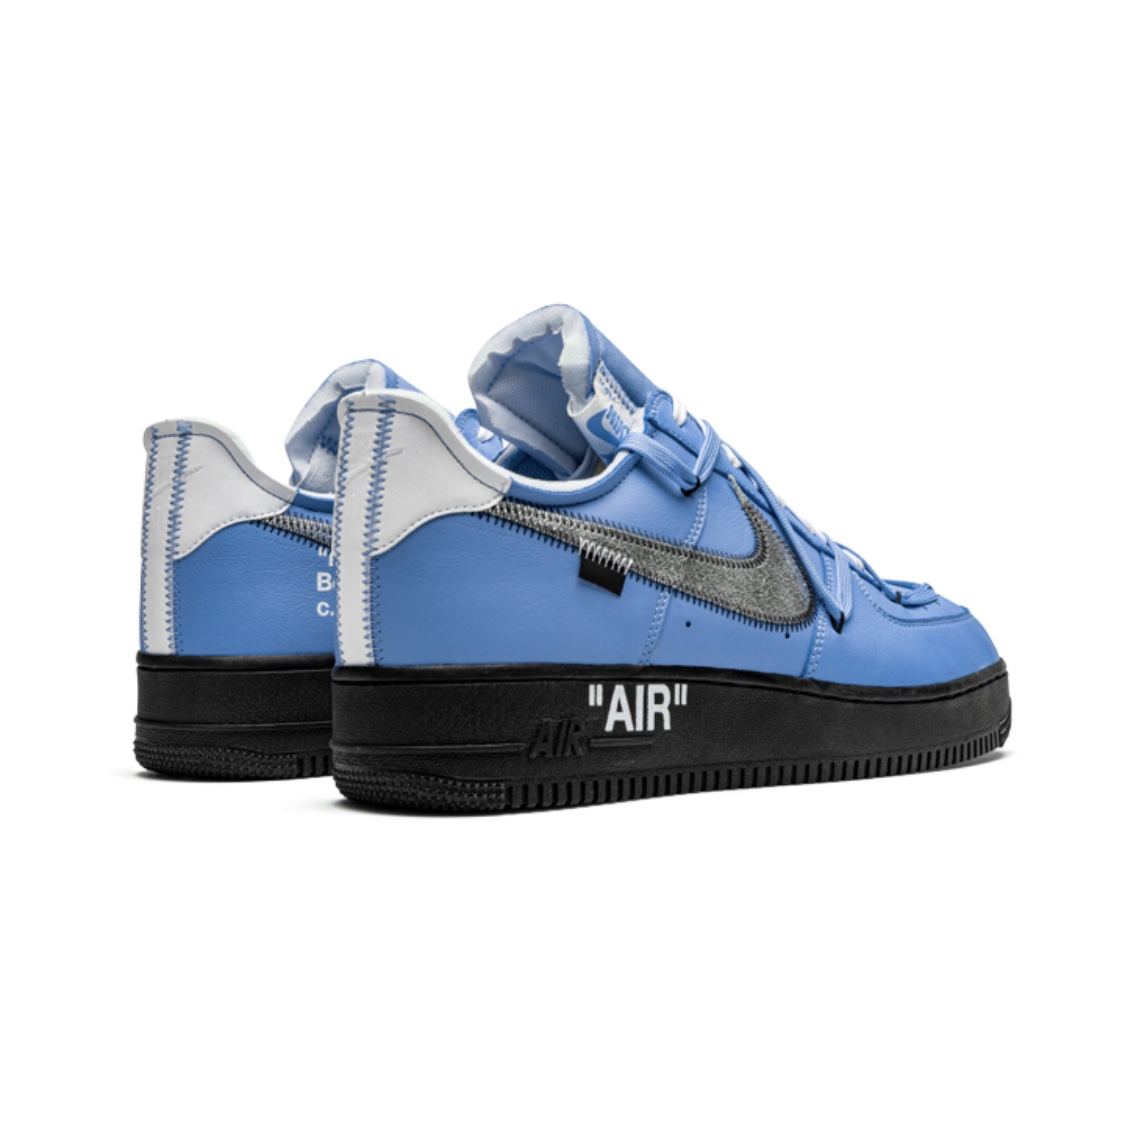 off-white-nike-air-force-1-mca-black-sole-2020